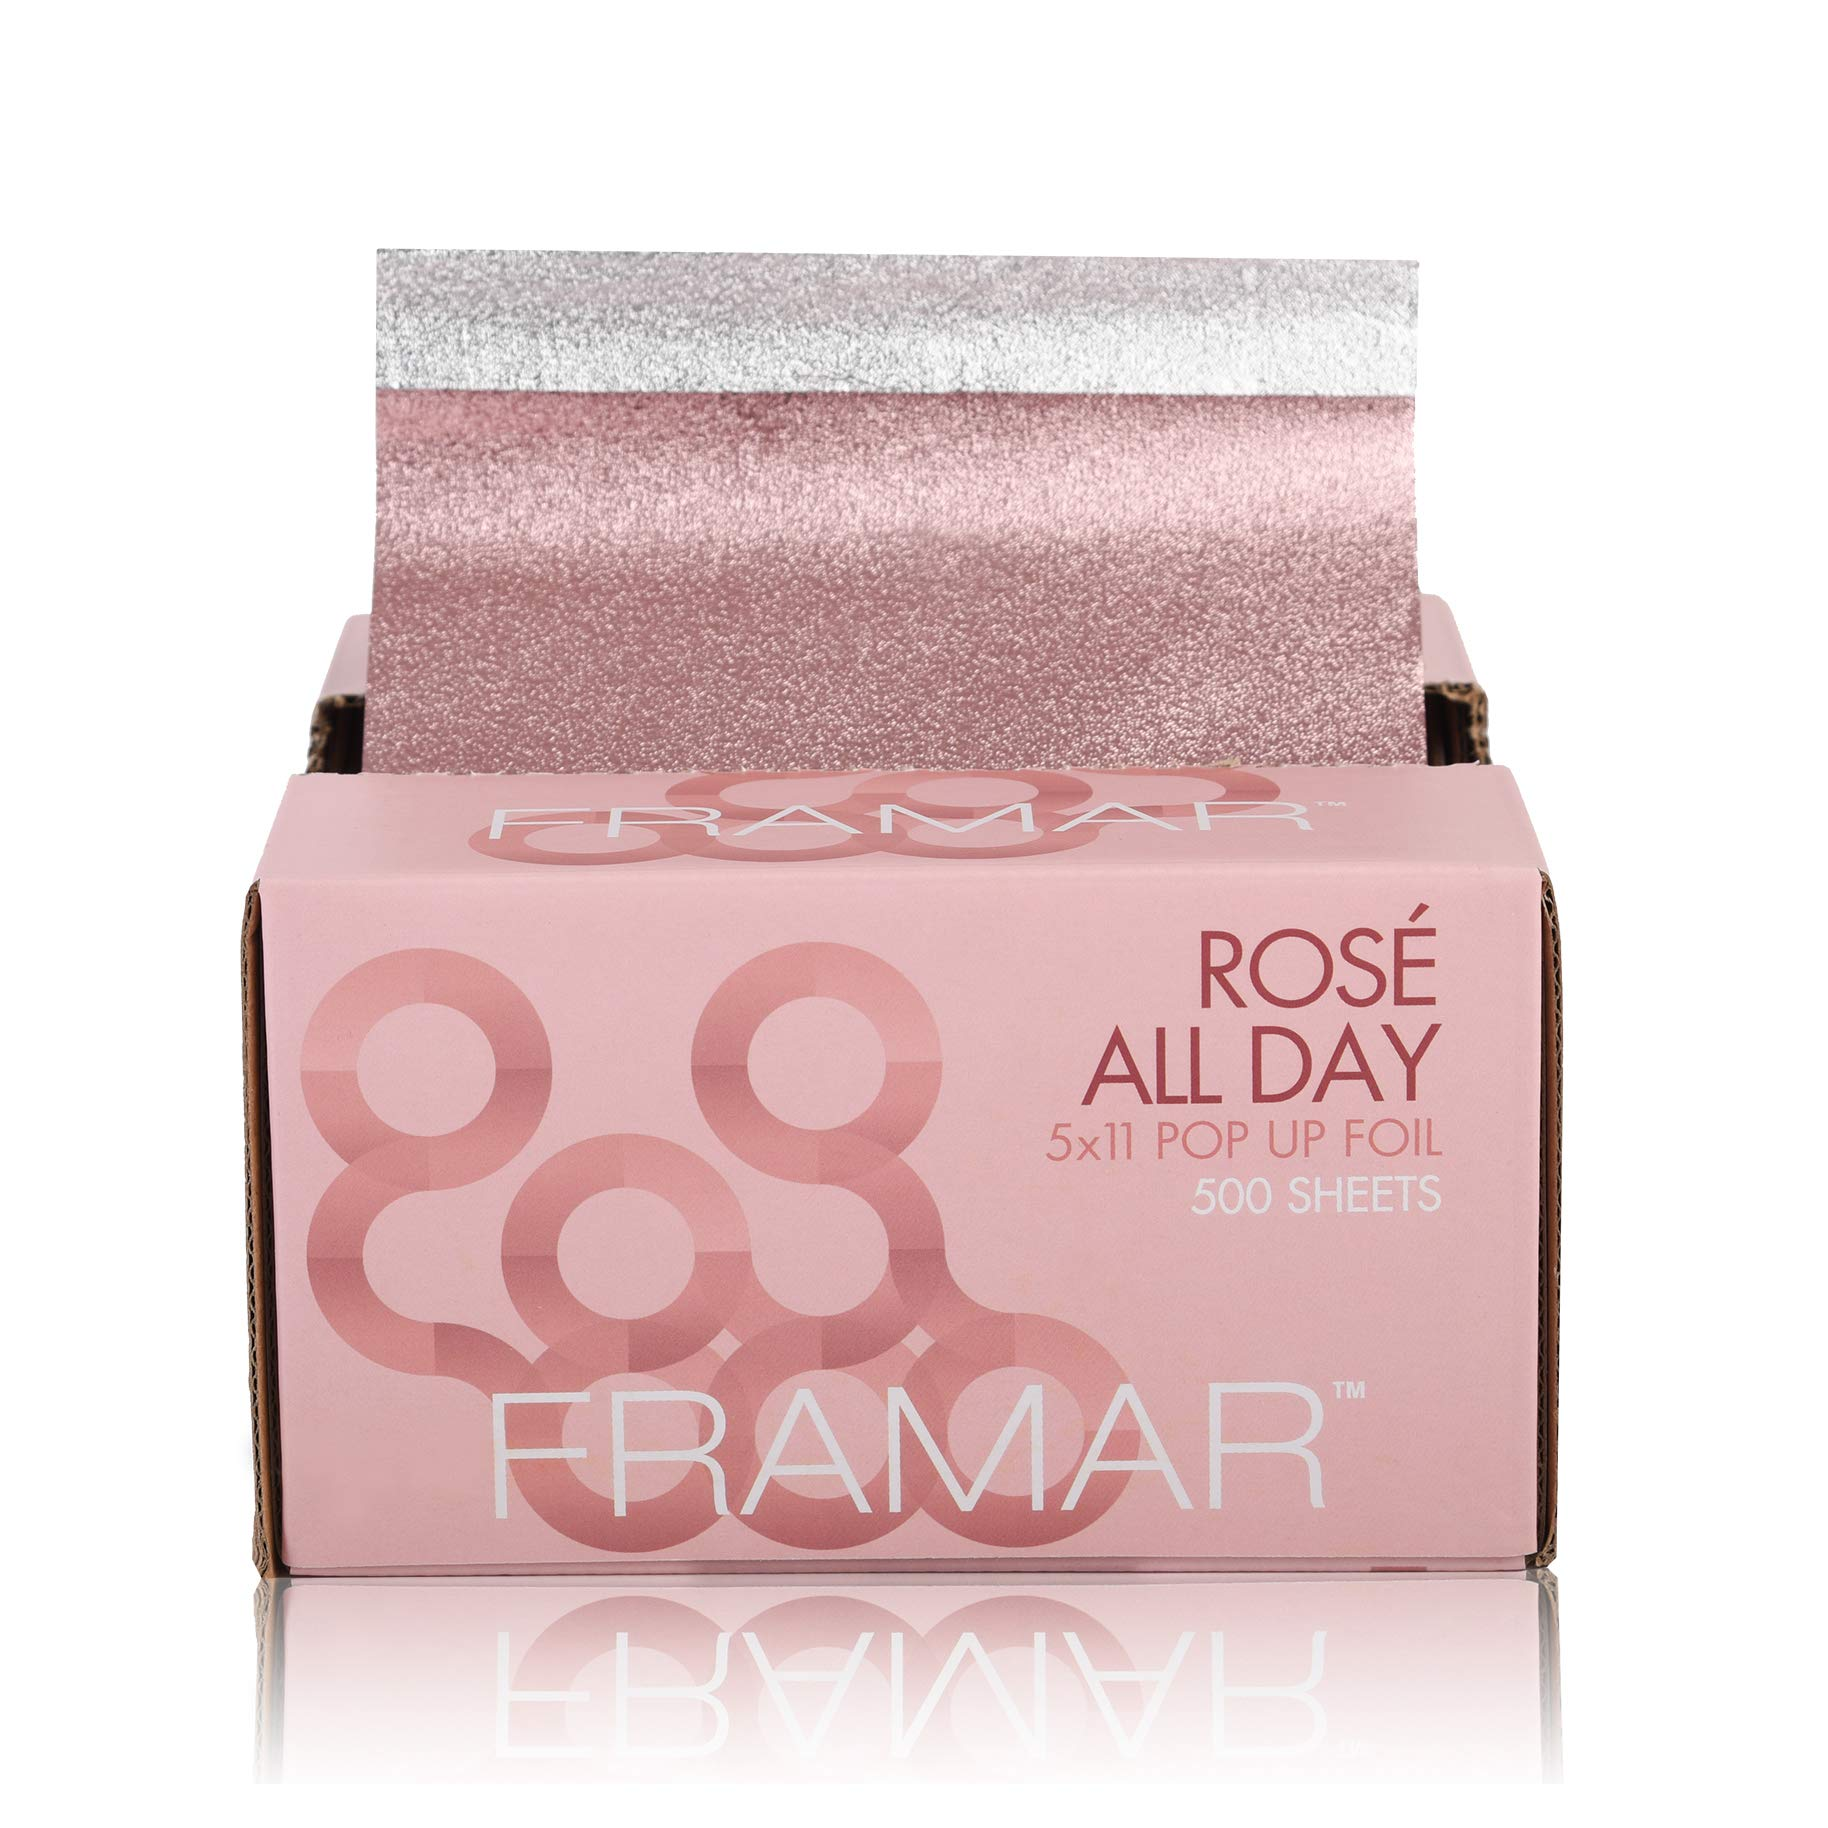 Framar Rosé All Day Pop Up Hair Foil, Aluminum Foil Sheets, Hair Foils For Highlighting - 500 Foil Sheets by FRAMAR